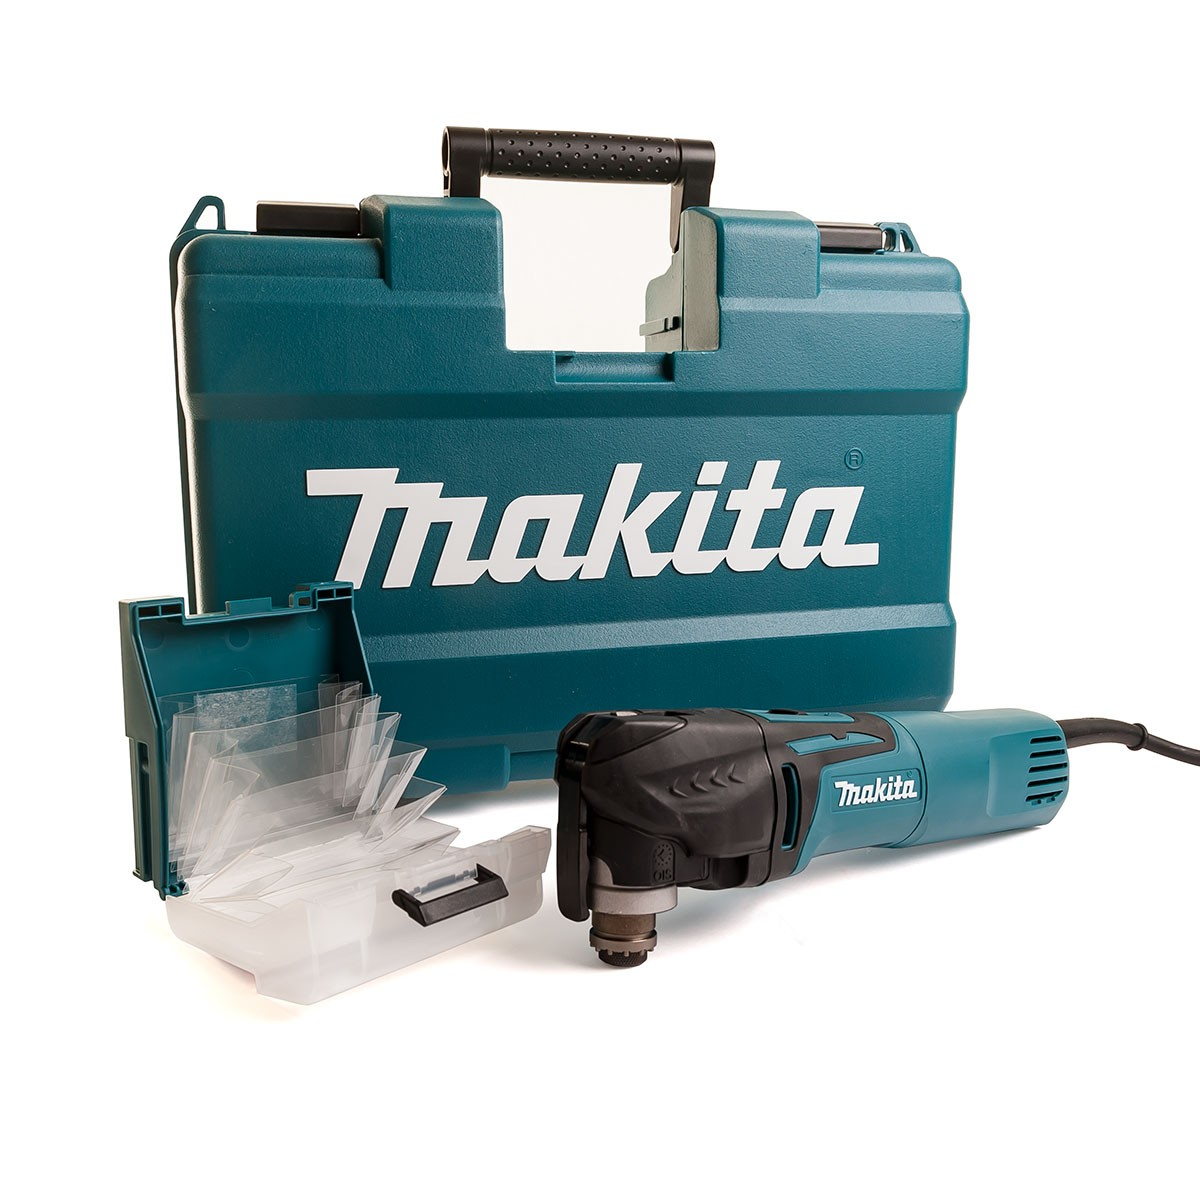 Makita TM3010CK 320w Oscillating Multi Tool Quick Release